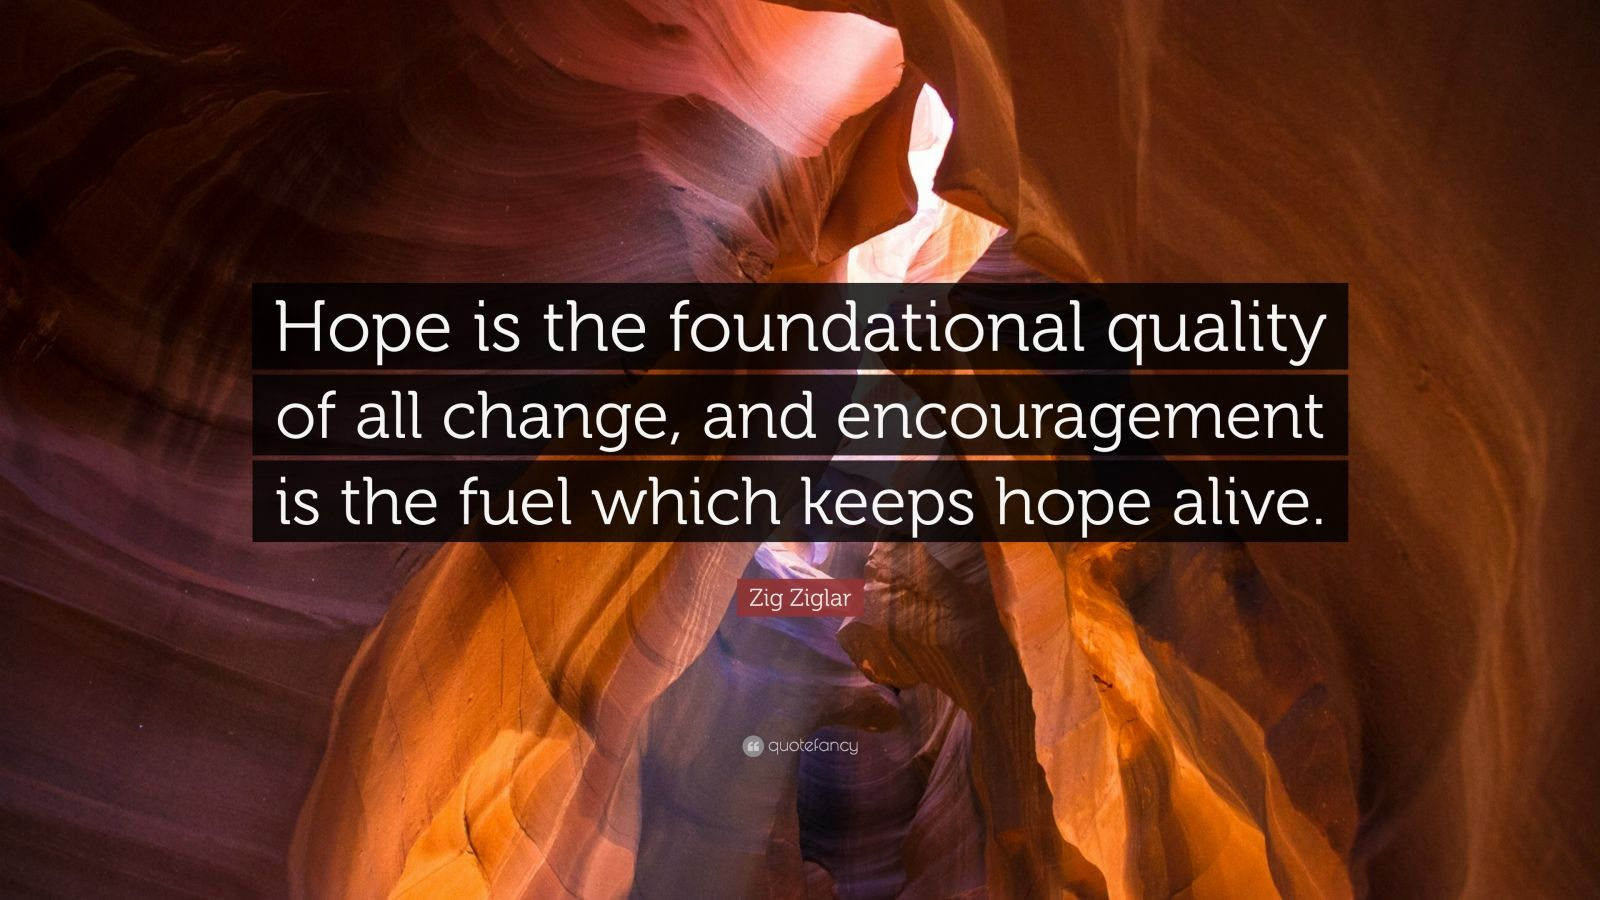 """Zig Ziglar Quote: """"Hope is the foundational quality of all change, and encouragement is the fuel which keeps hope alive."""""""